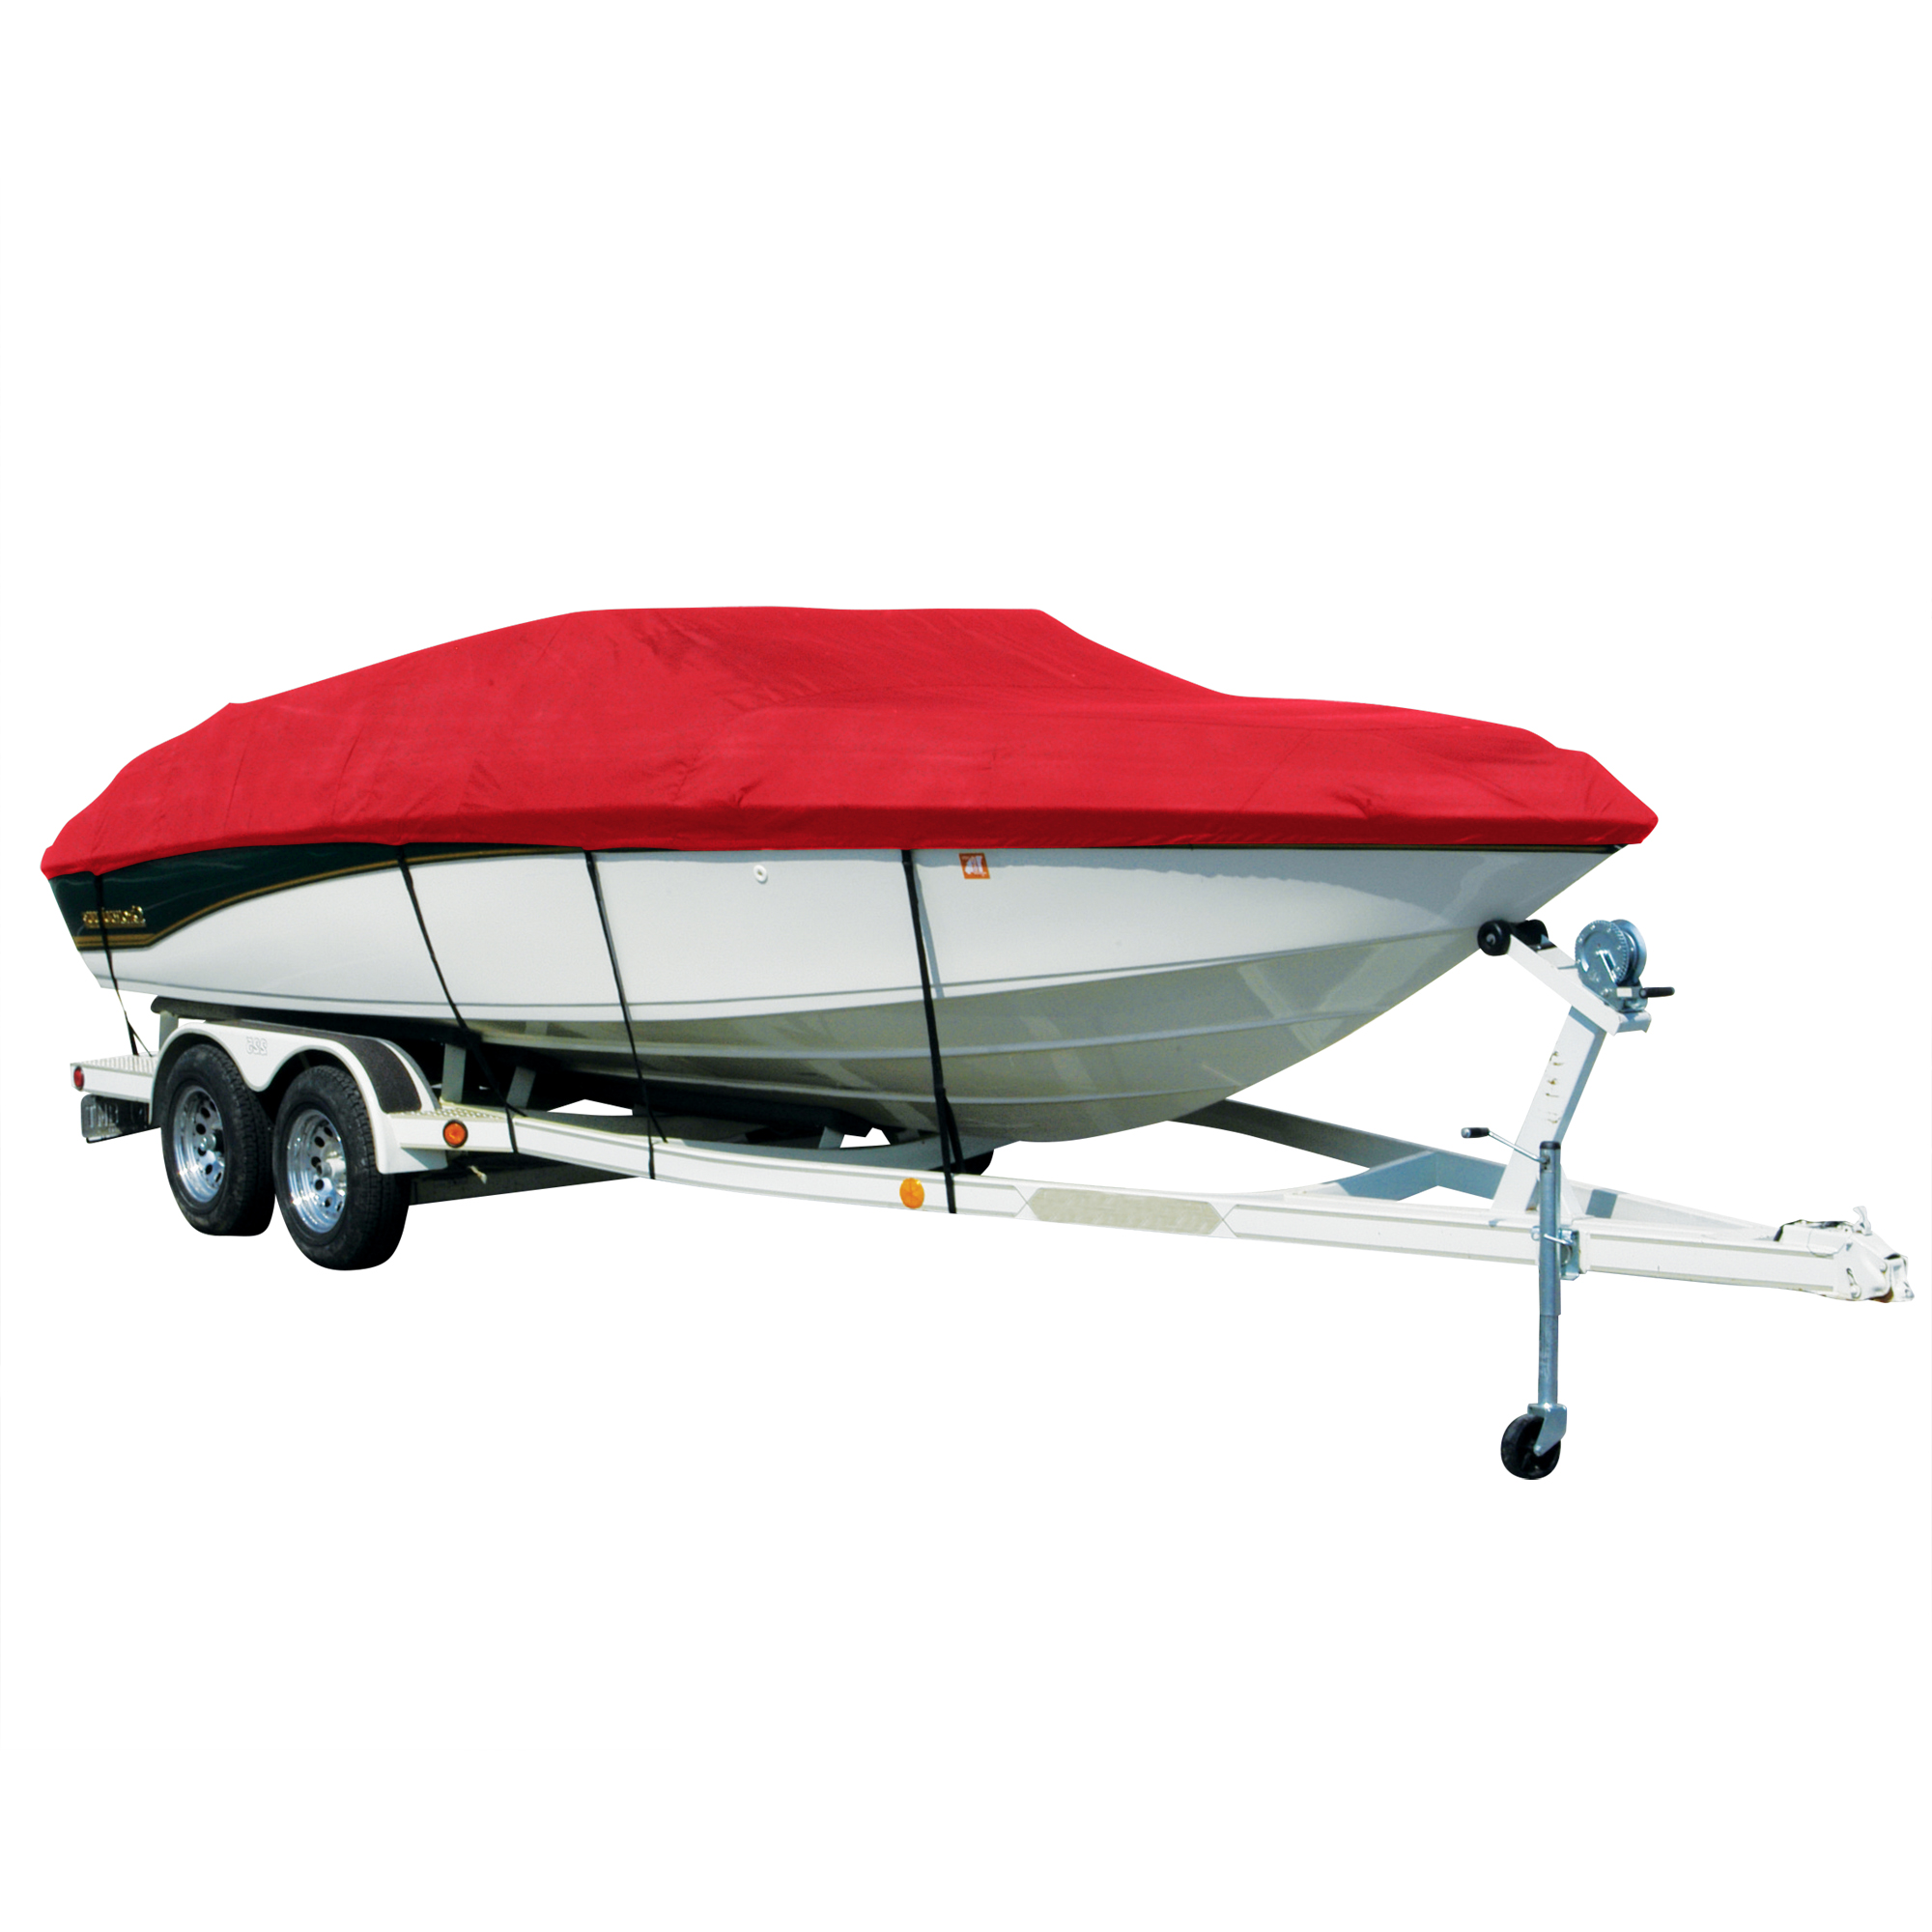 Covermate Sharkskin Plus Exact-Fit Cover for Princecraft Super Pro 176 Super Pro 176 Fish N Promenade W/Ski Rope Guard O/B. Red thumbnail